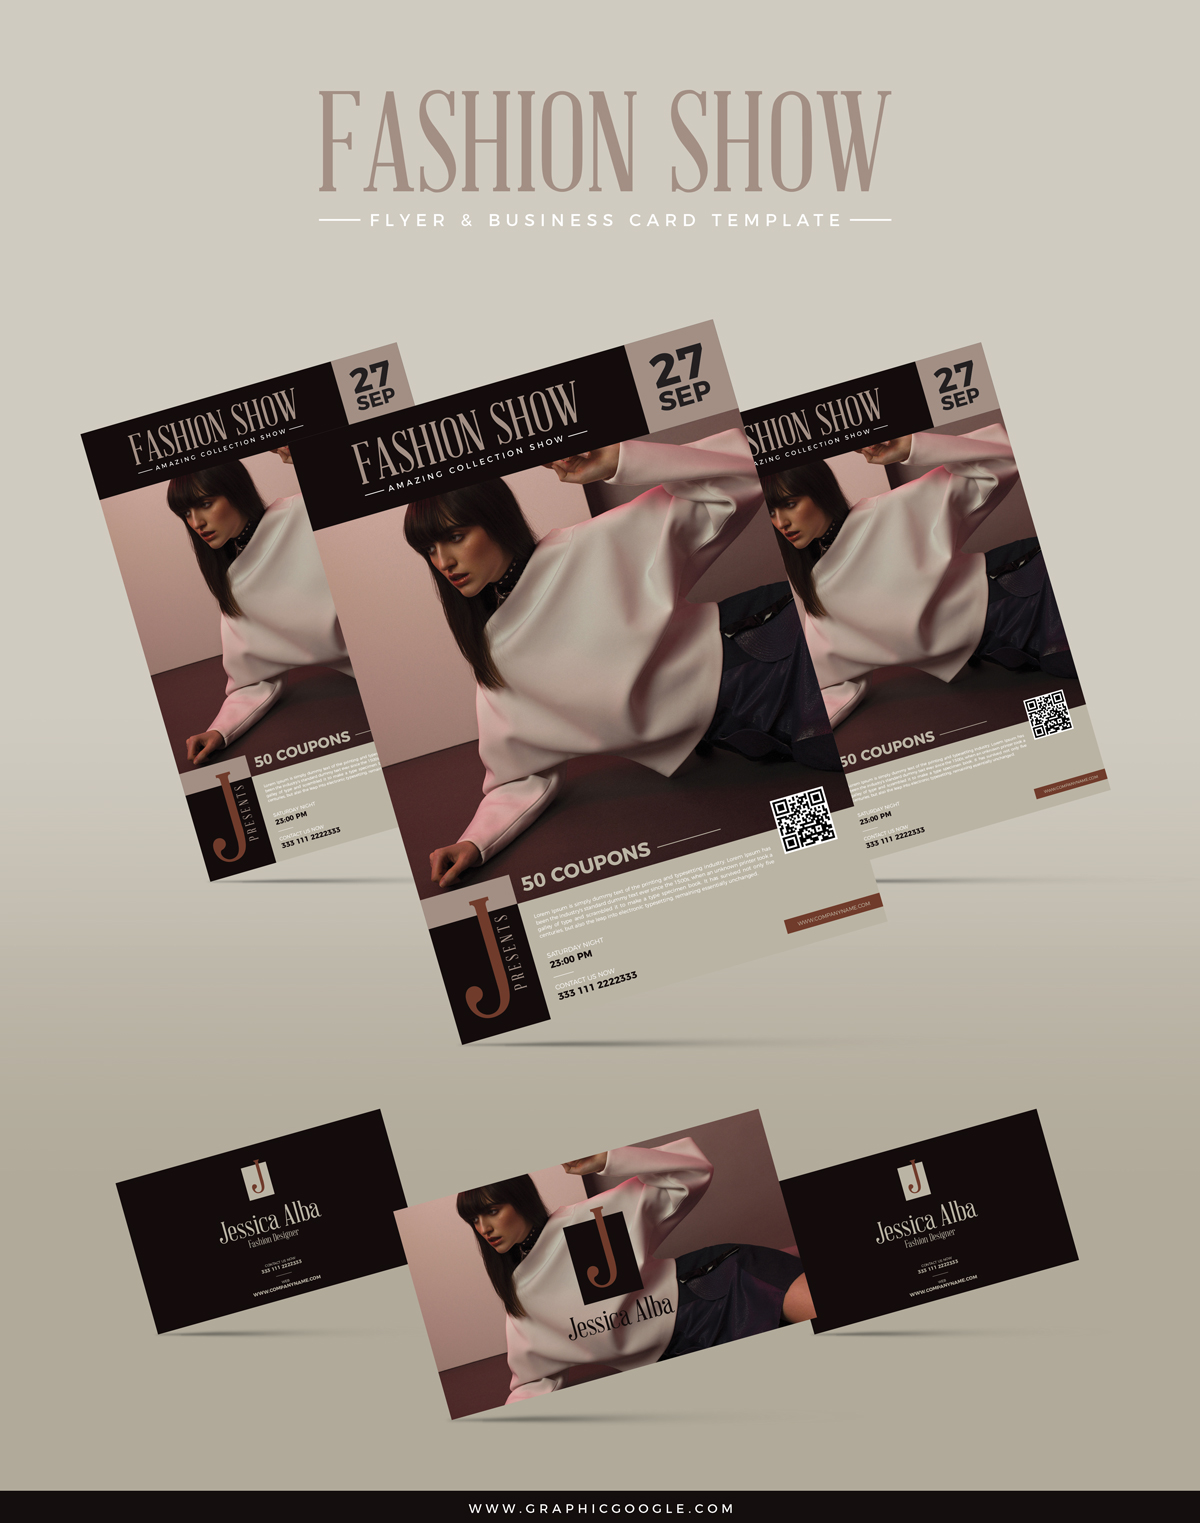 Free-Fashion-Show-Flyer-&-Business-Card-Template